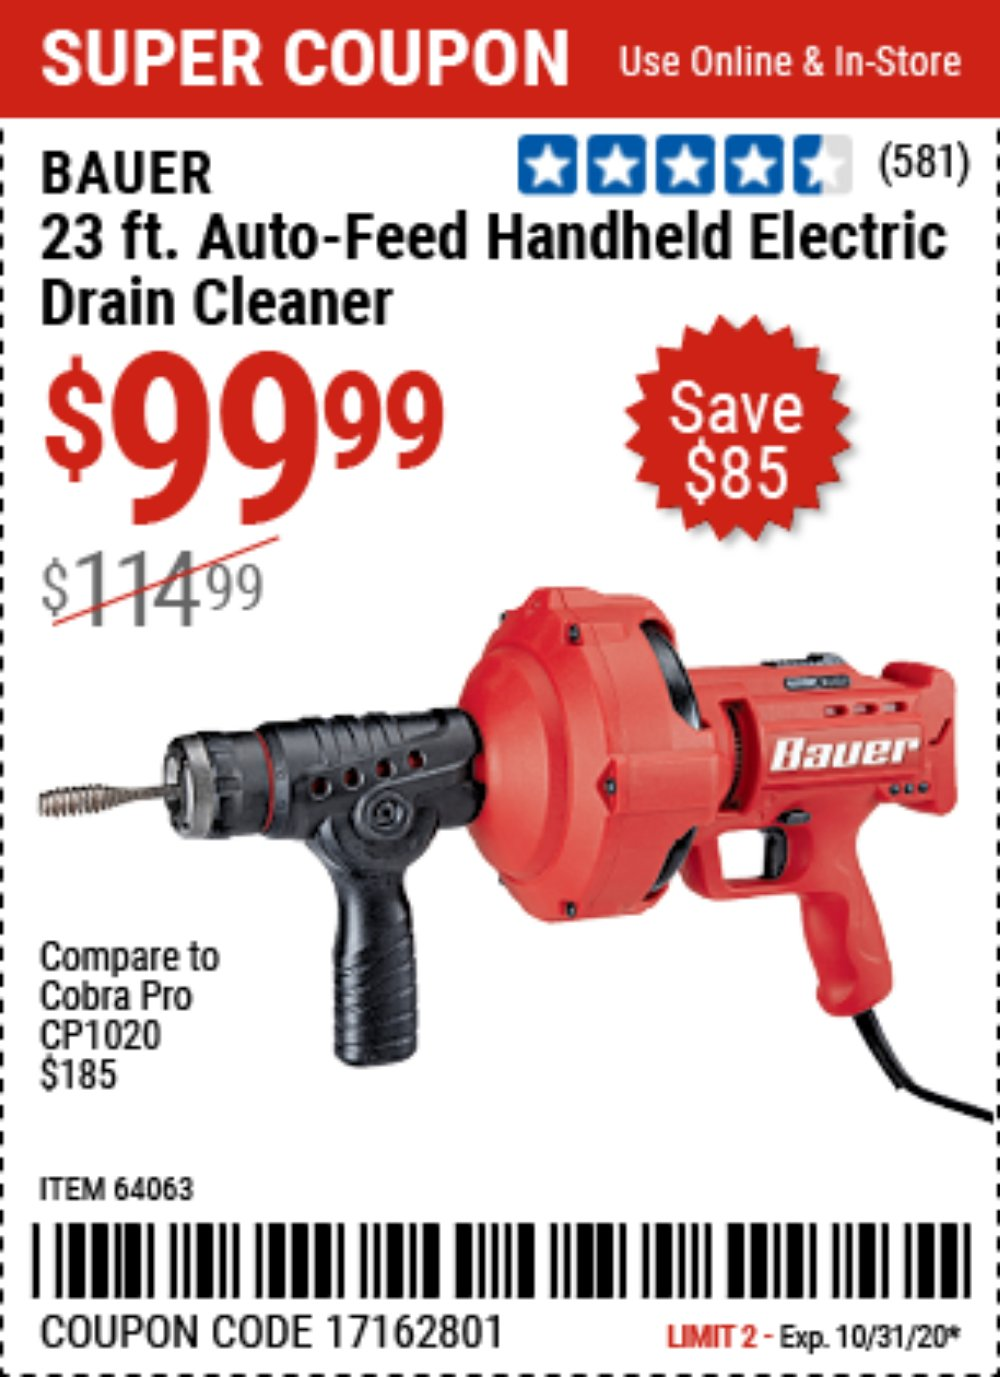 Harbor Freight Coupon, HF Coupons - Bauer 23 Ft Auto Feed Handheld Electric Drain Cleaner